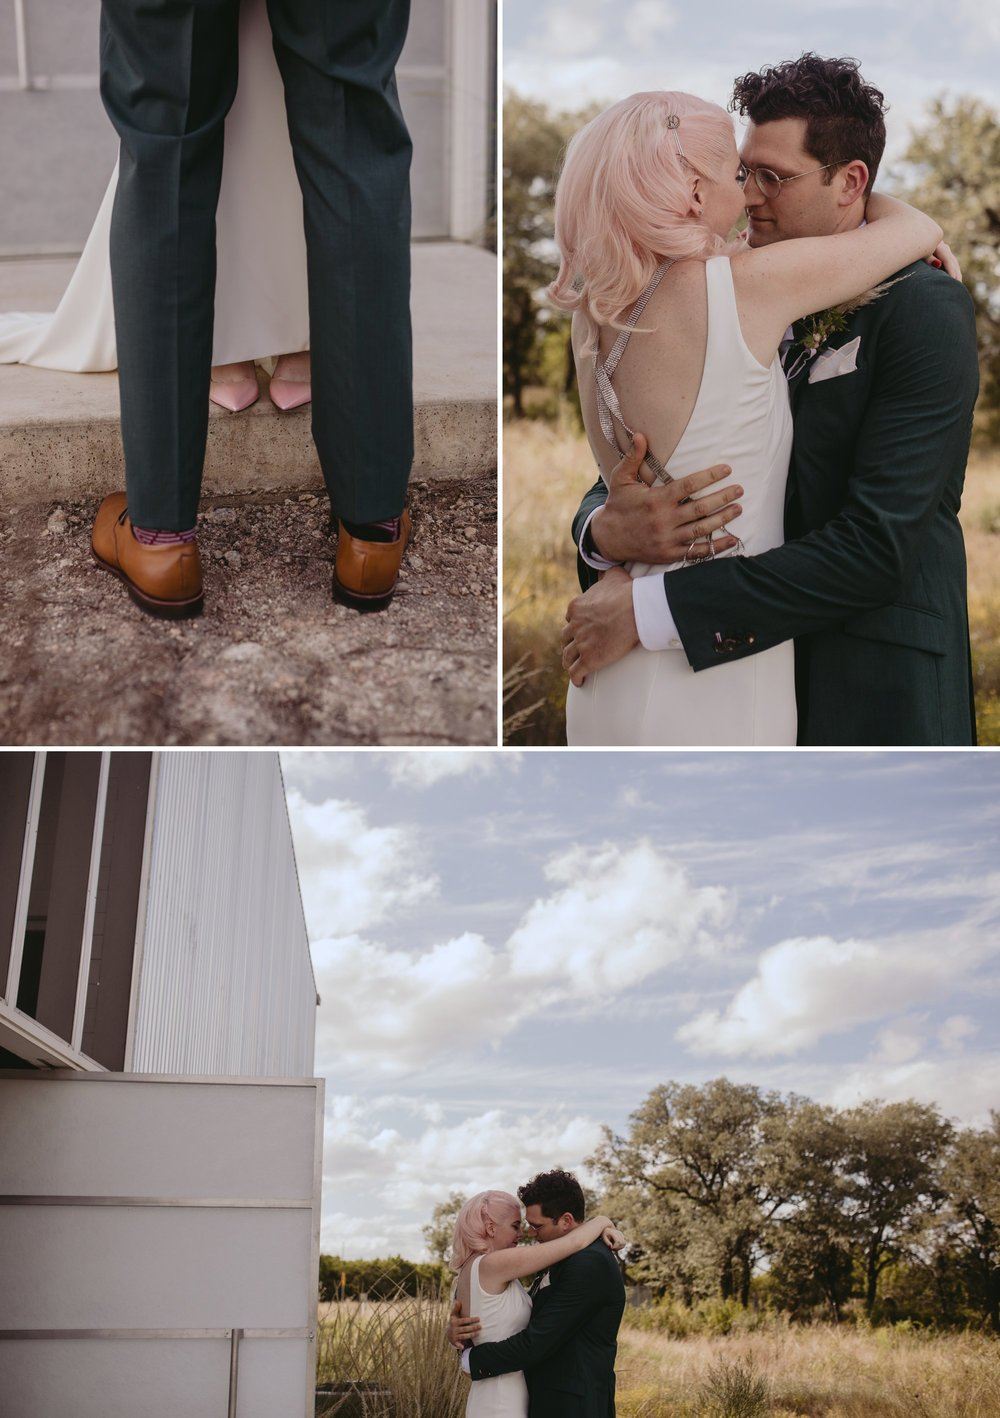 Bride with pink hair and groom in a purple suit prospect house wedding in austin tx with pastel decor and wild florals first look